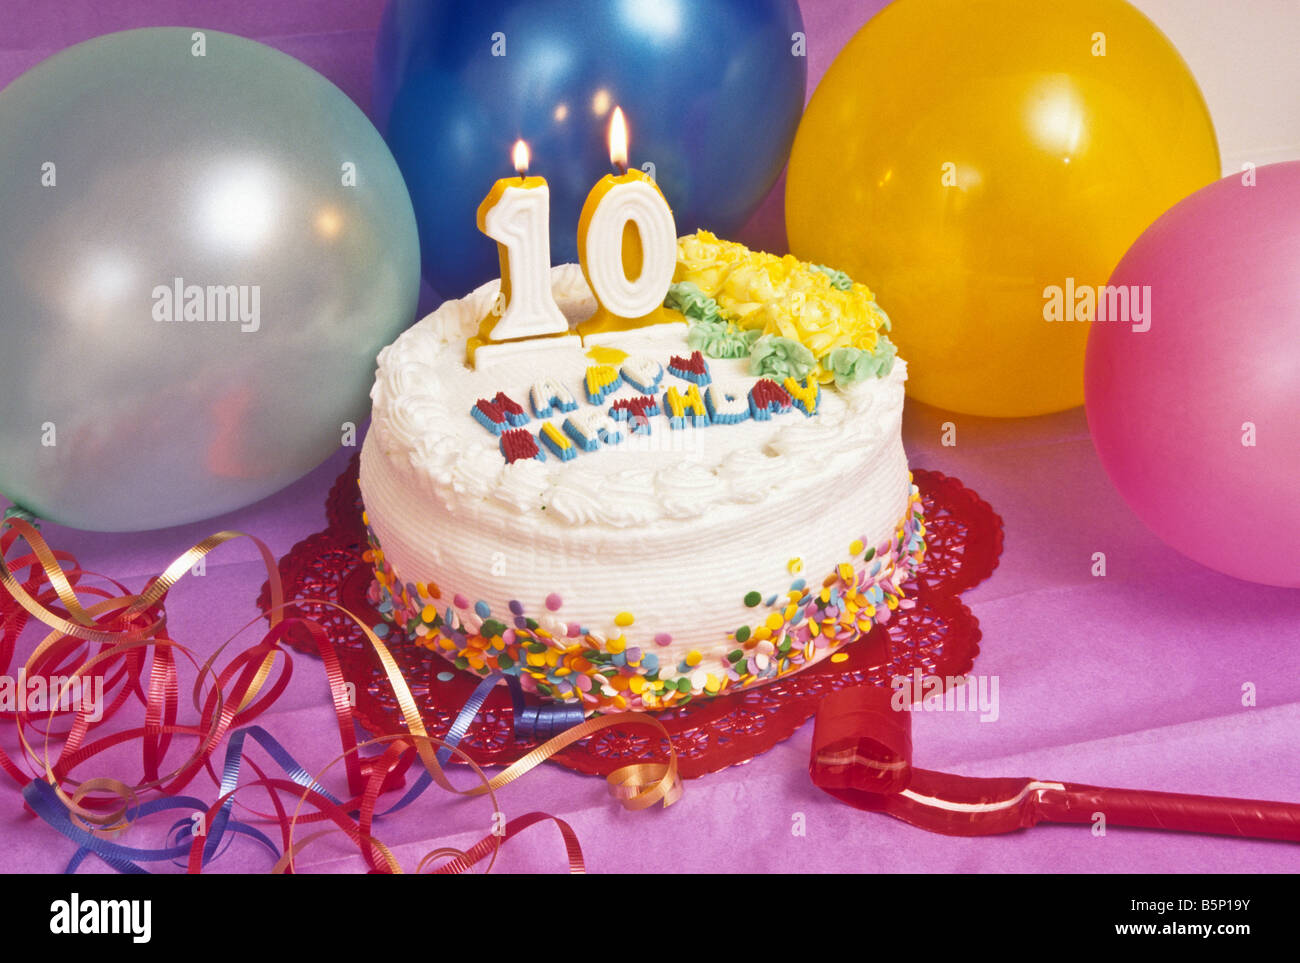 Groovy Birthday Cake With Year 10 Candle Burning Stock Photo 20767655 Funny Birthday Cards Online Elaedamsfinfo